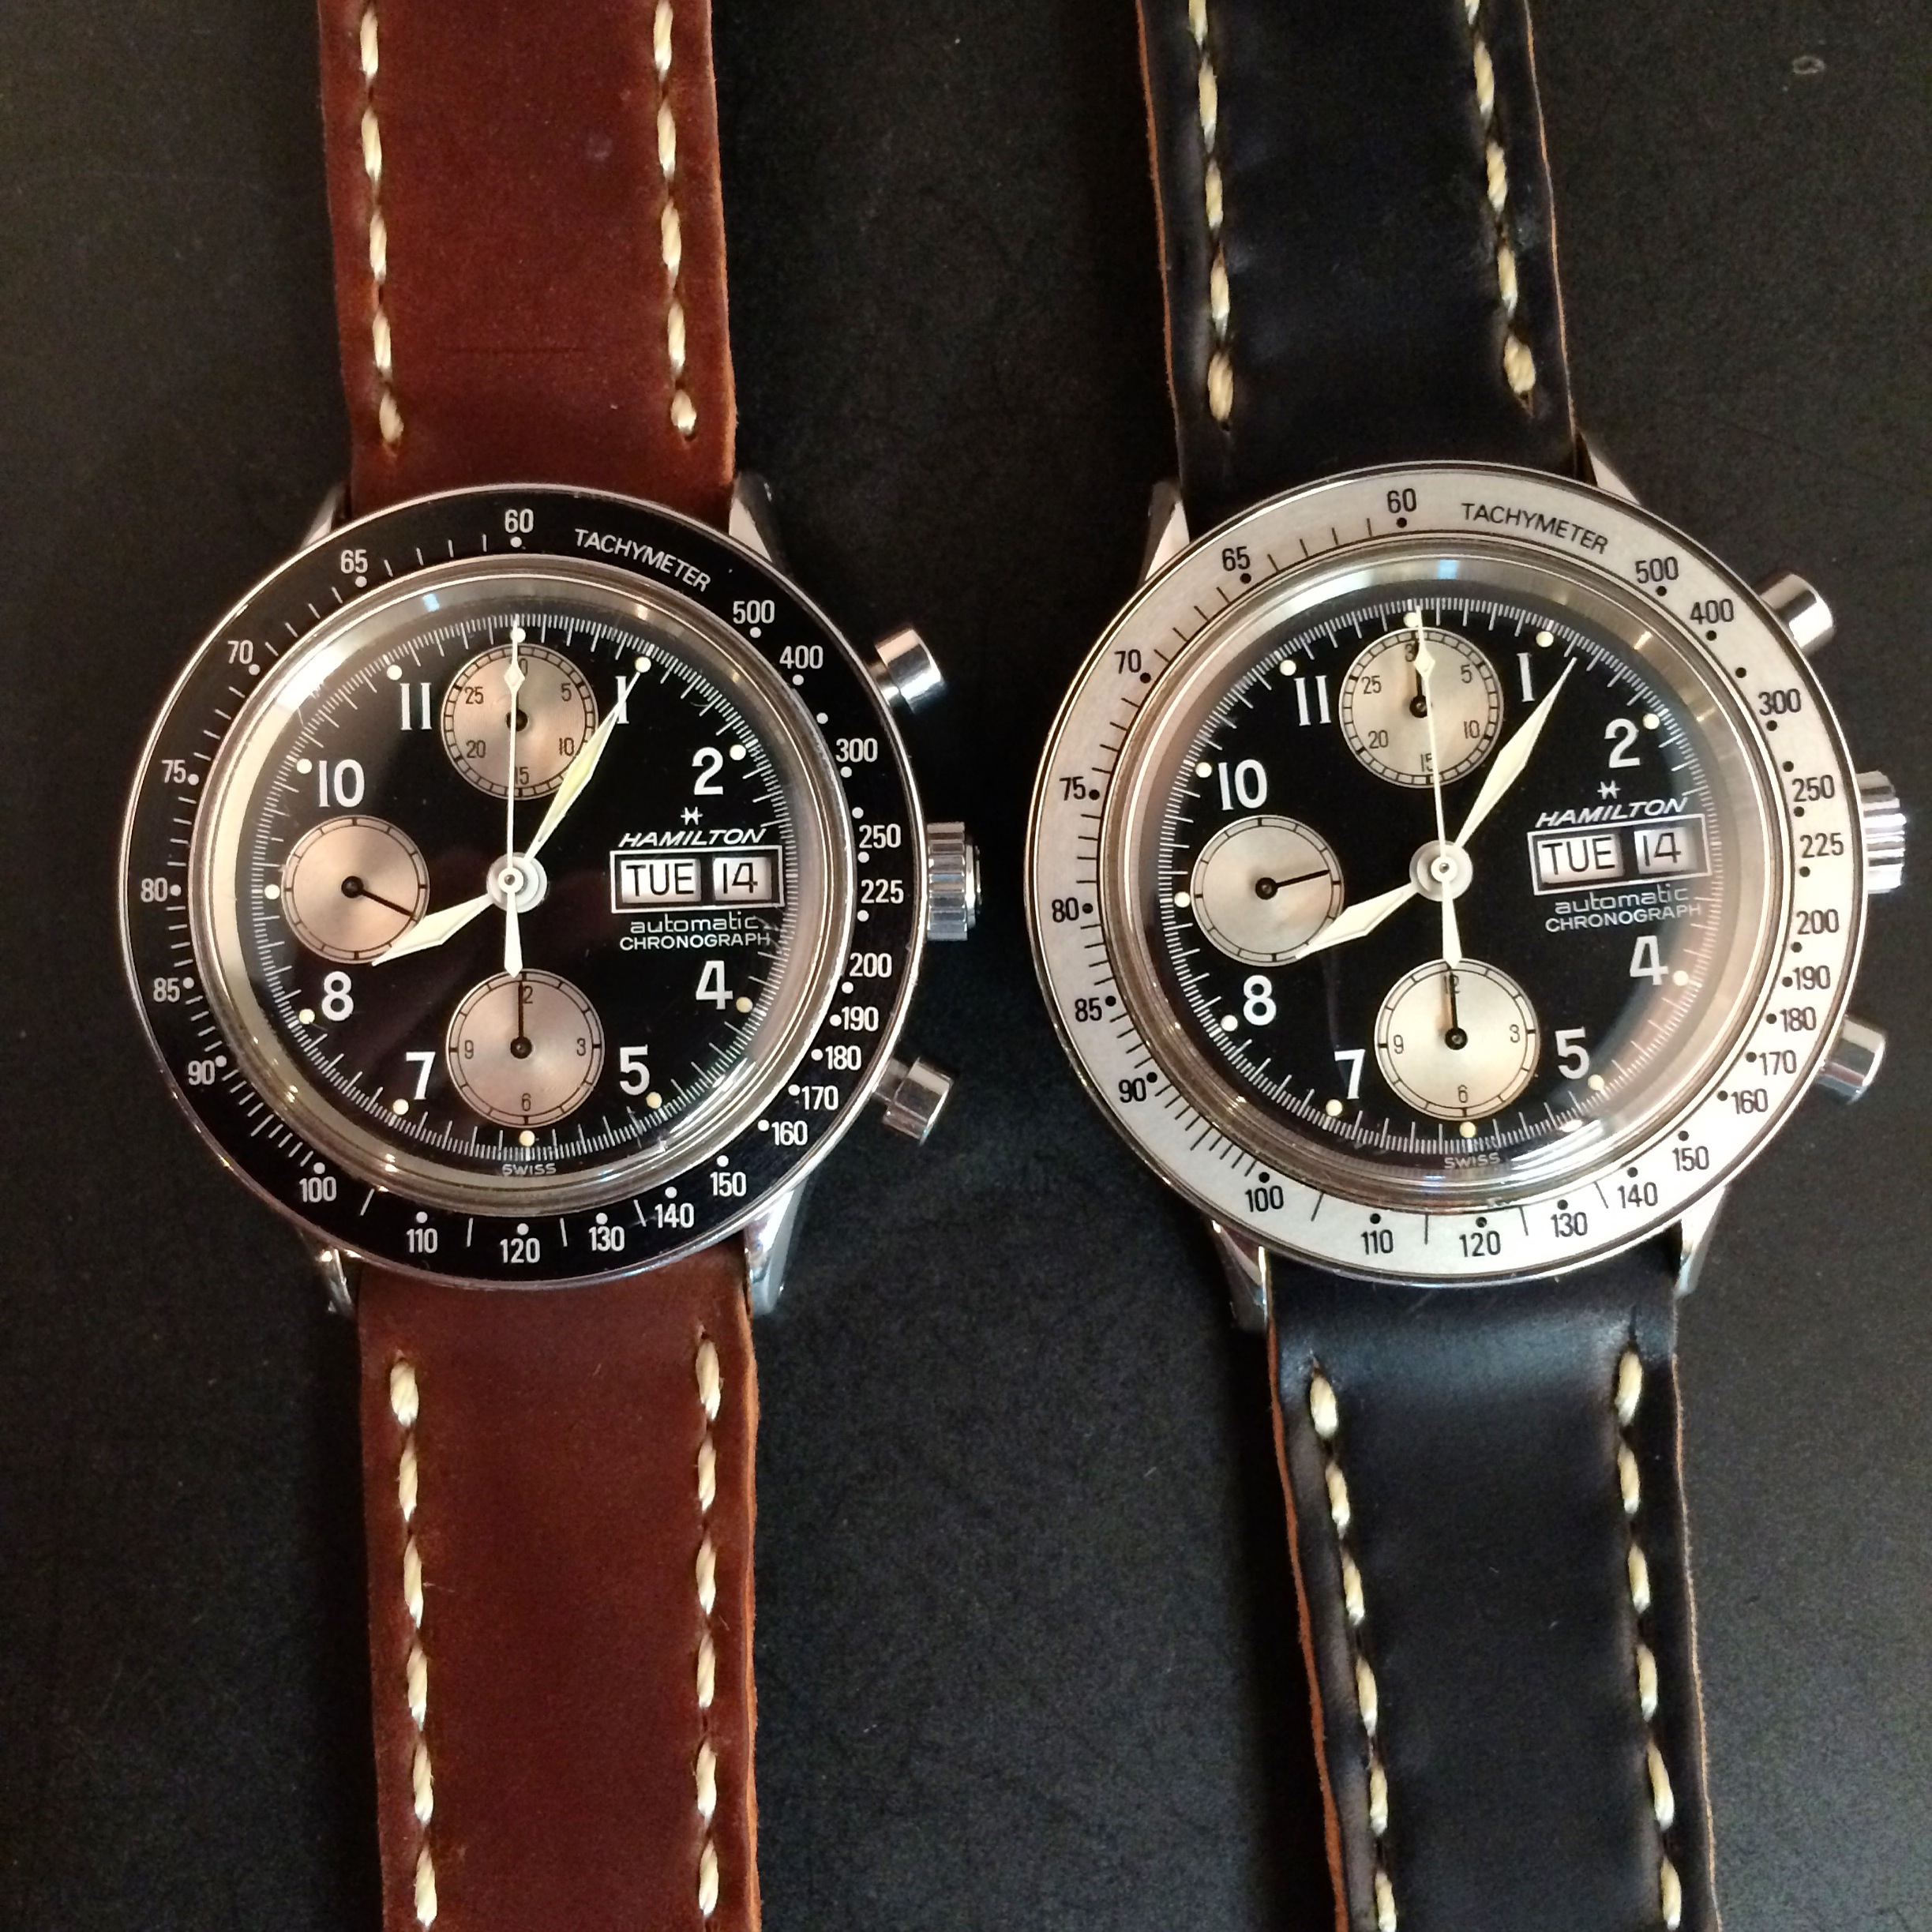 A pair of Hamilton 9379's, with complimentary bezels. Alas, I have released the black bezeled watch back into the wild.